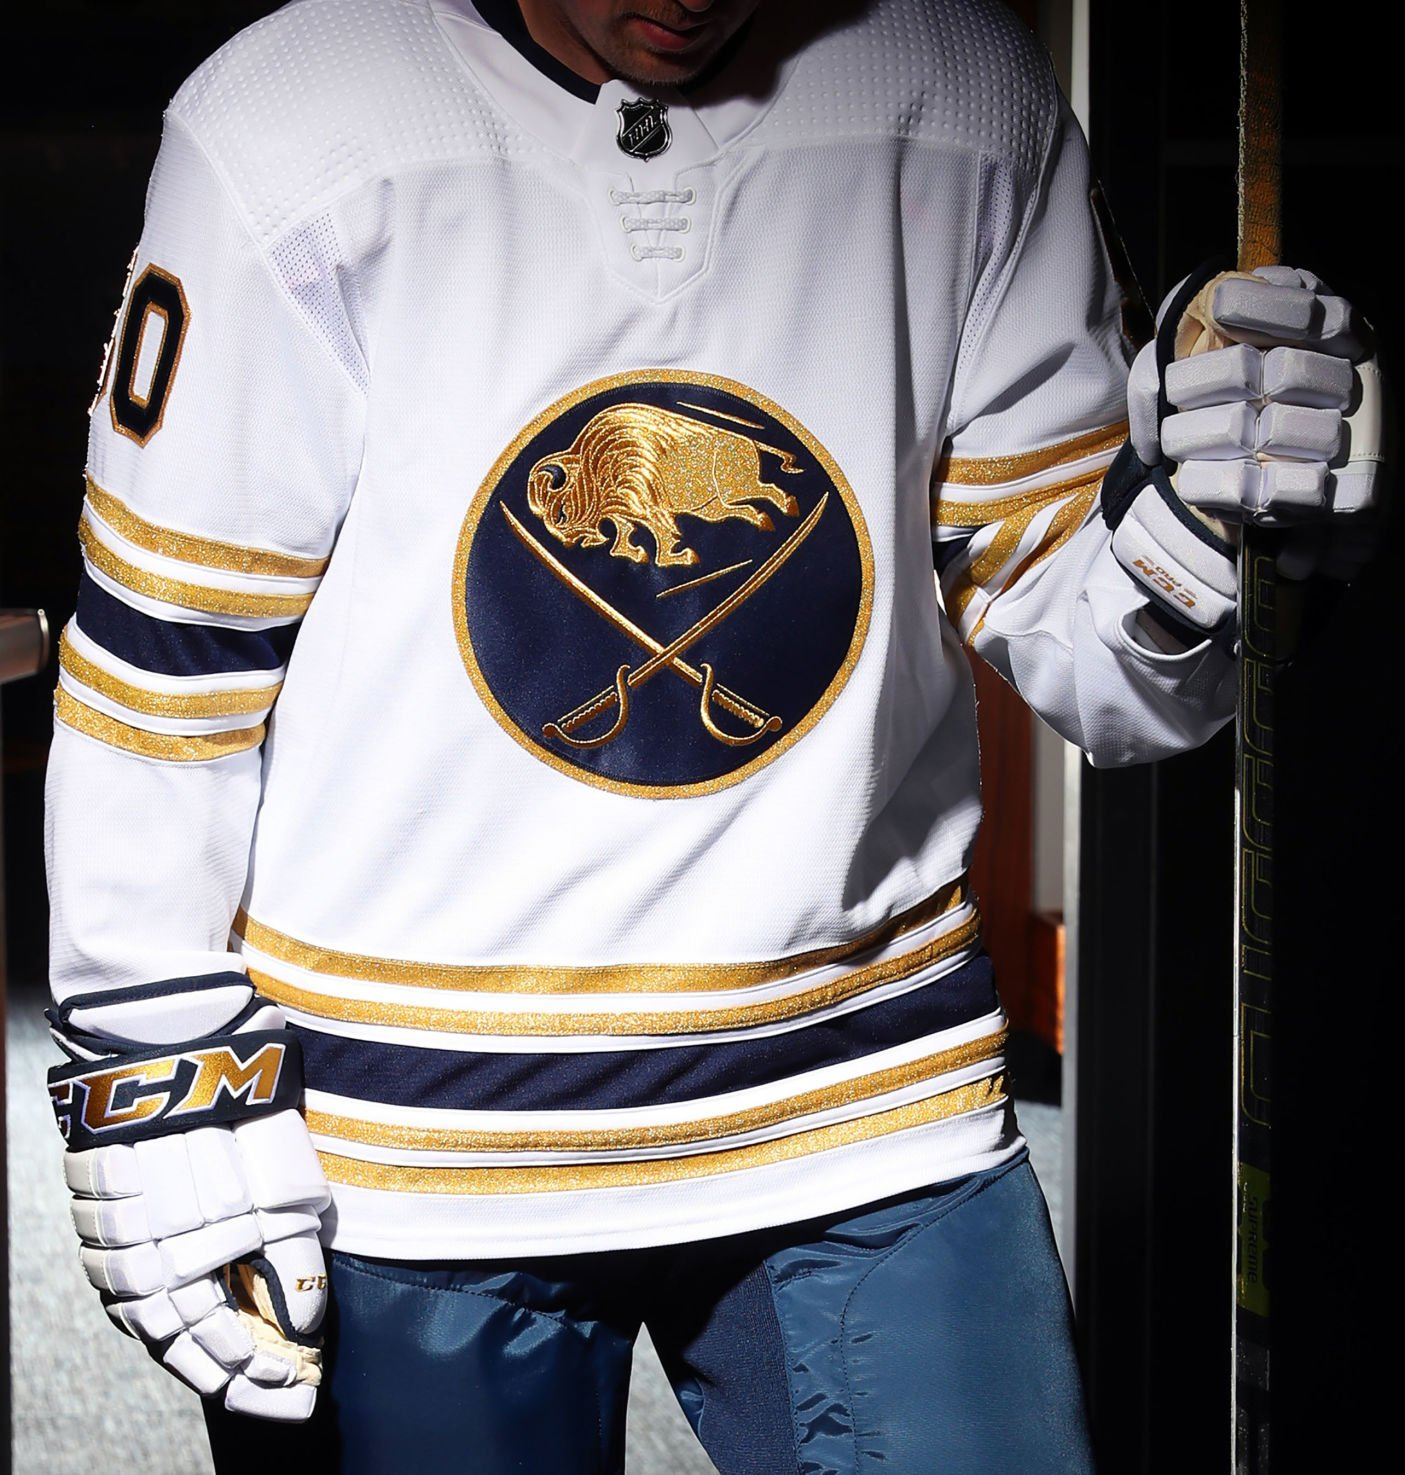 Sabres' 50th anniversary uniform features gold accents, white ...